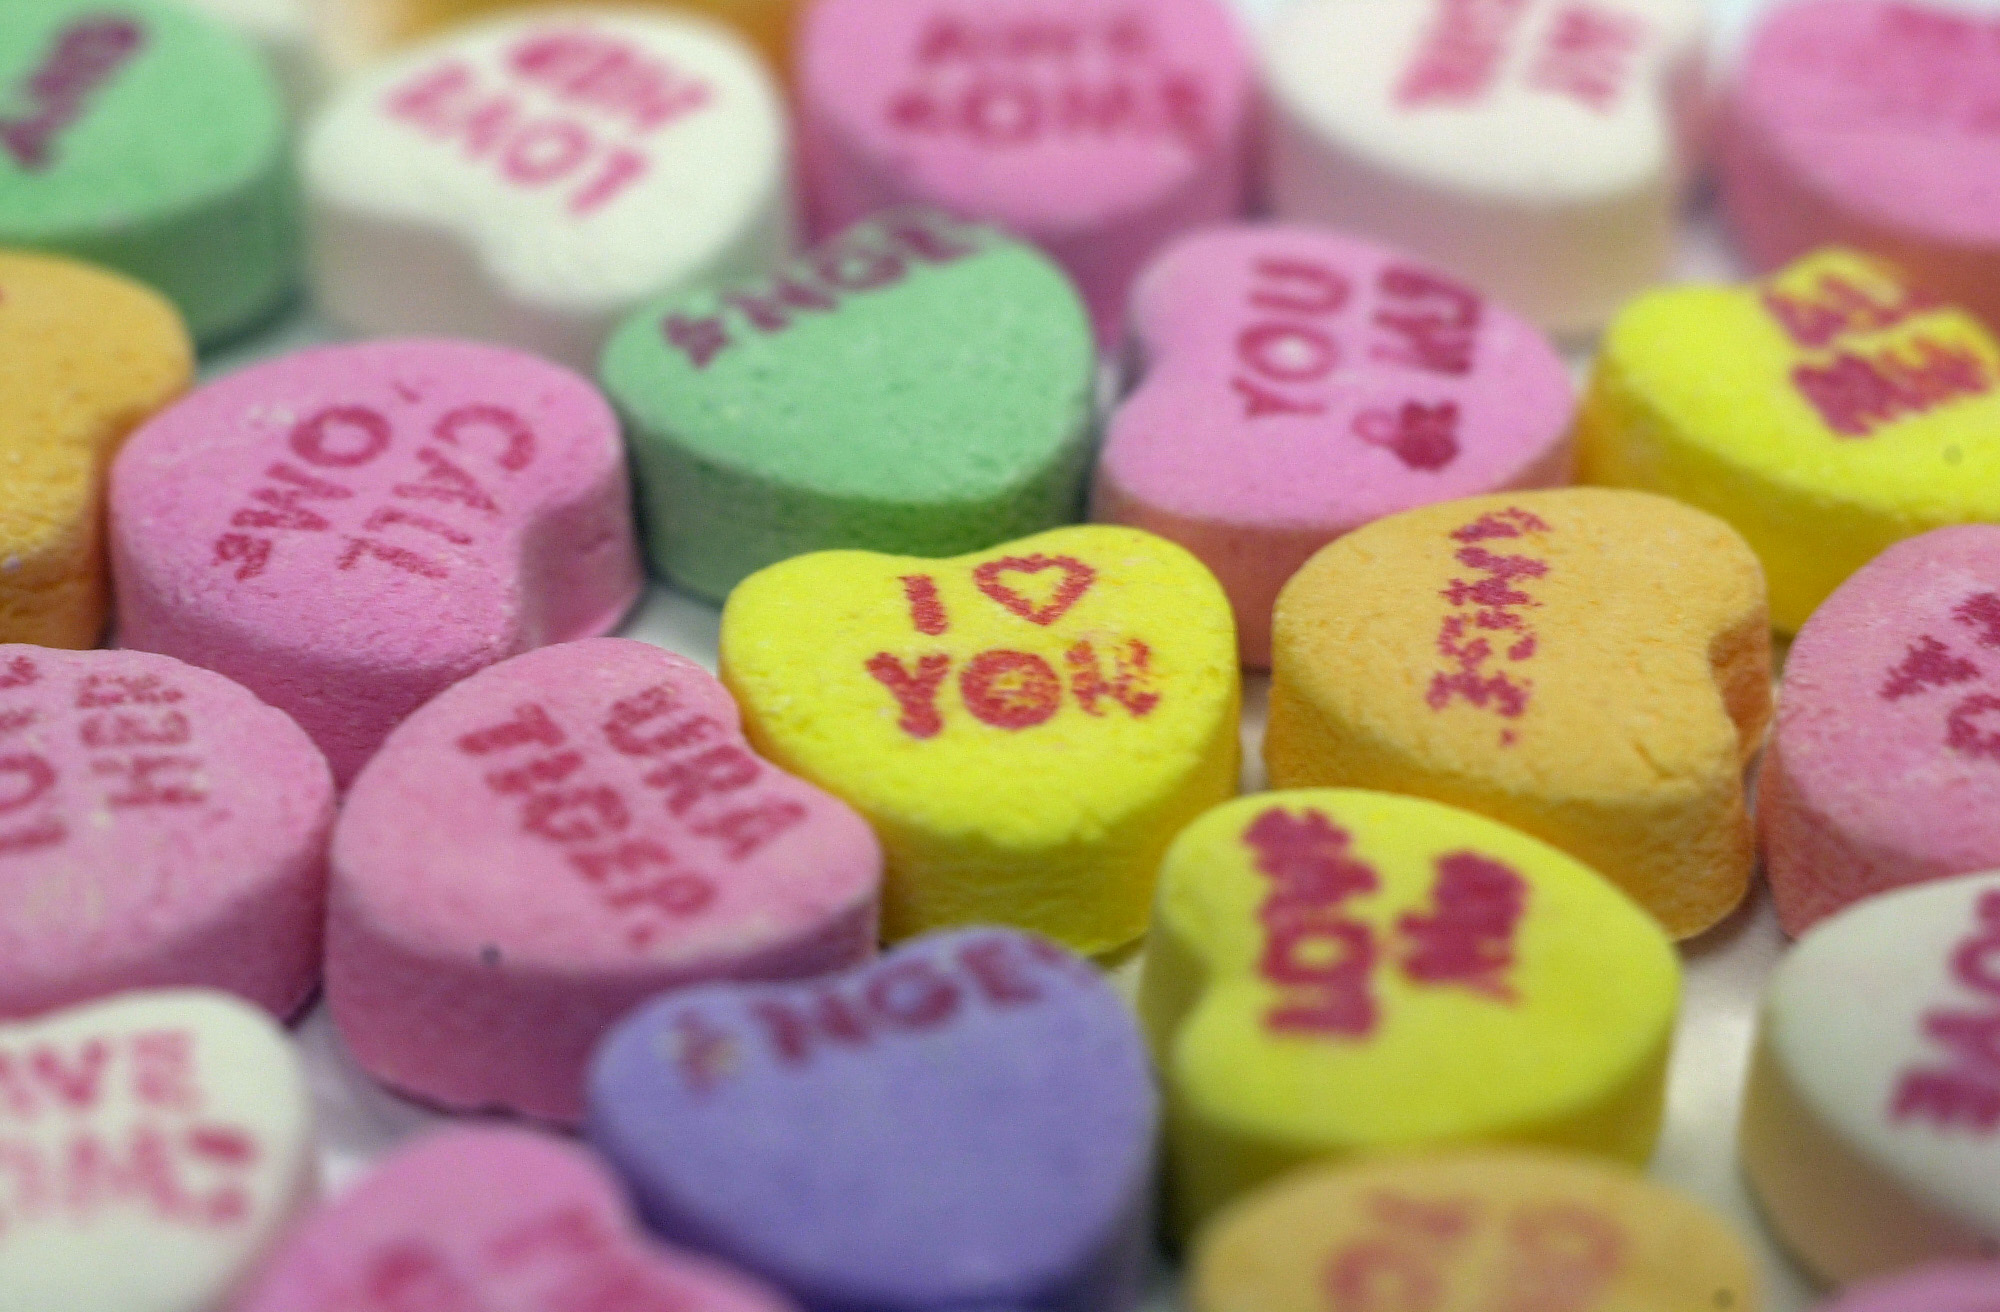 Gettysburg students compare their stories of love to typical Valentine's Day candies (Photo courtesy of Chris Sloan via Flickr).